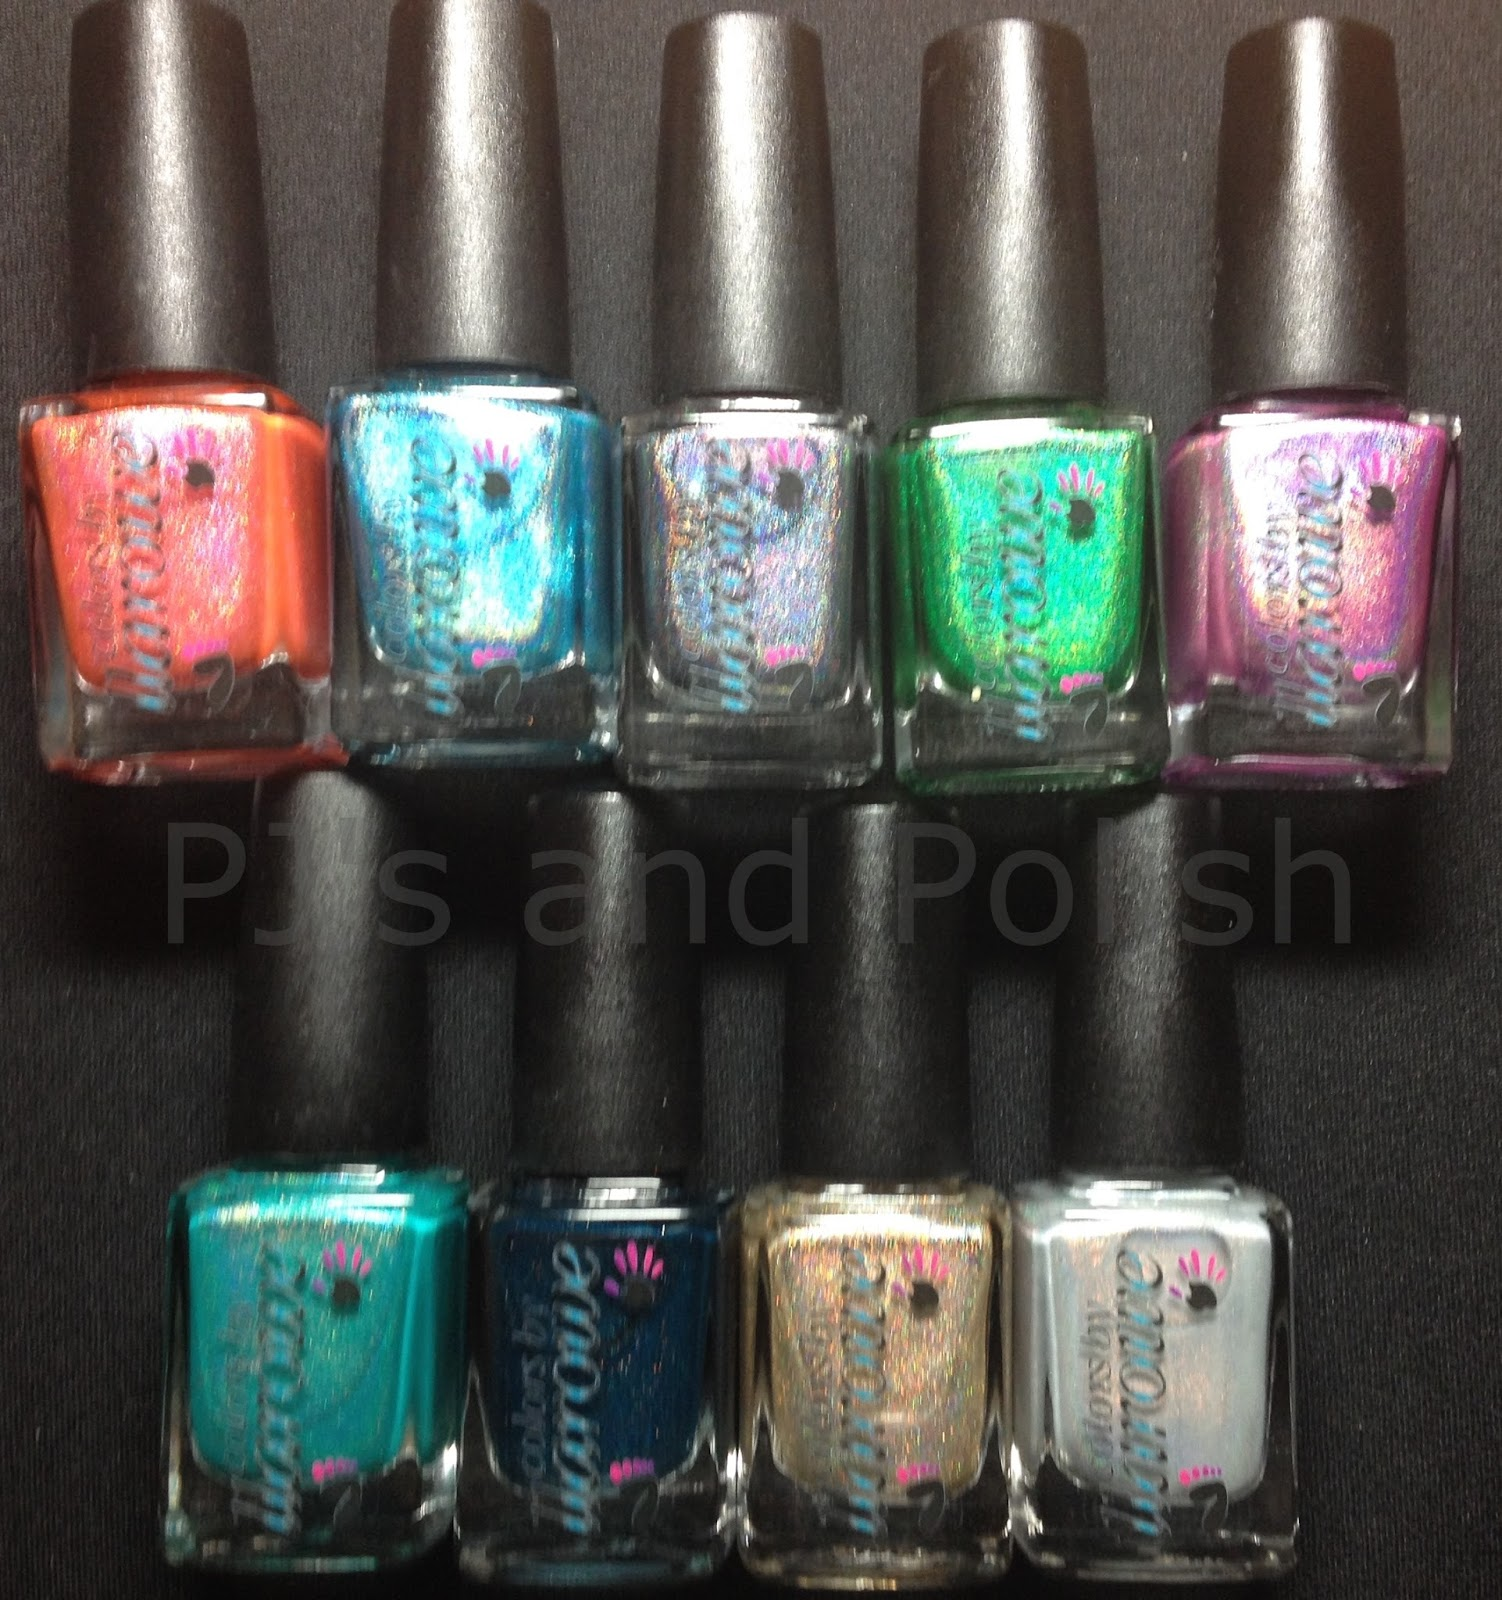 Colors by Llarowe (CbL) Summer 2014 Holo/Holo Glitters Anna's Adventure Chillin' In Paradise Final Fantasy Gemini Rising My Own Private Paradise Refresh...ing! Sweet Revenge The Golden Touch When Doves Cry